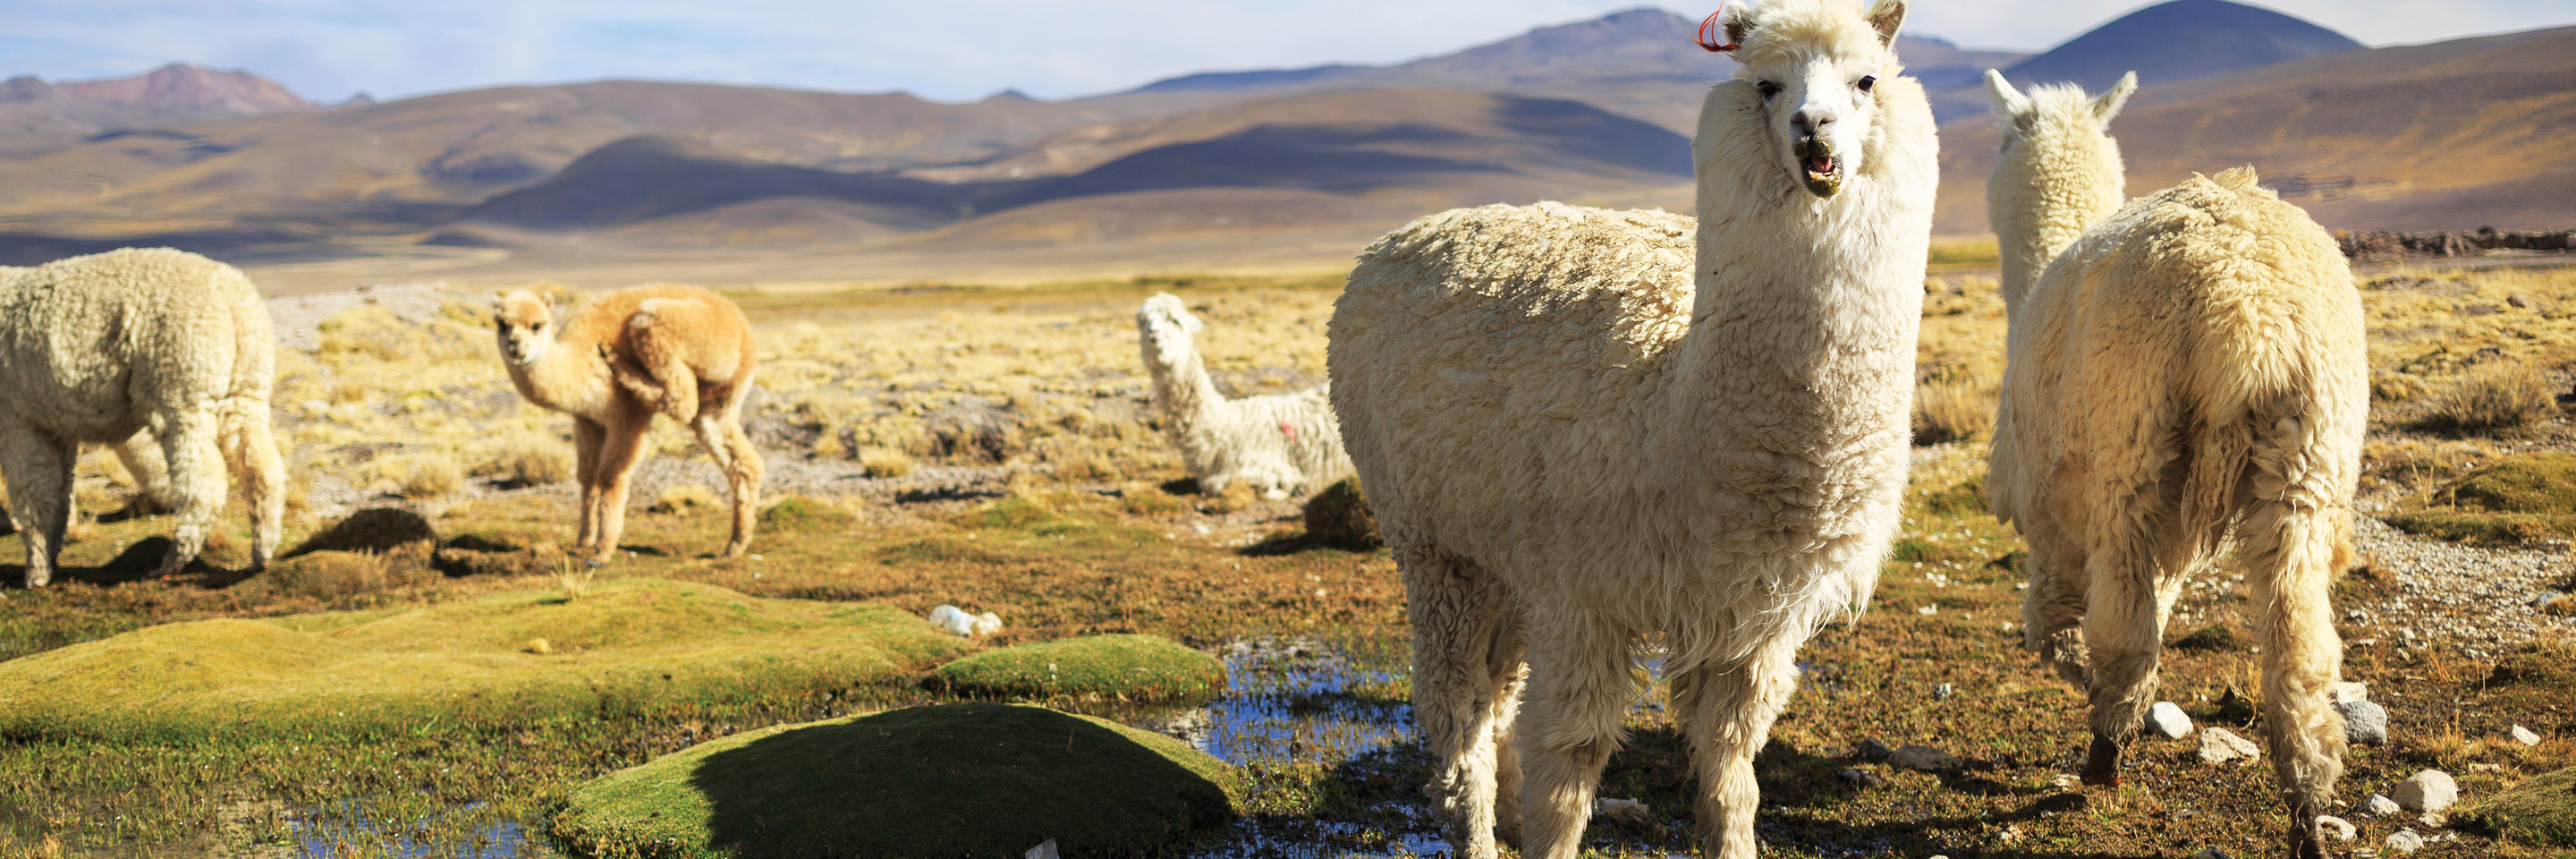 Mysteries of the Inca Empire with Arequipa & Colca Canyon